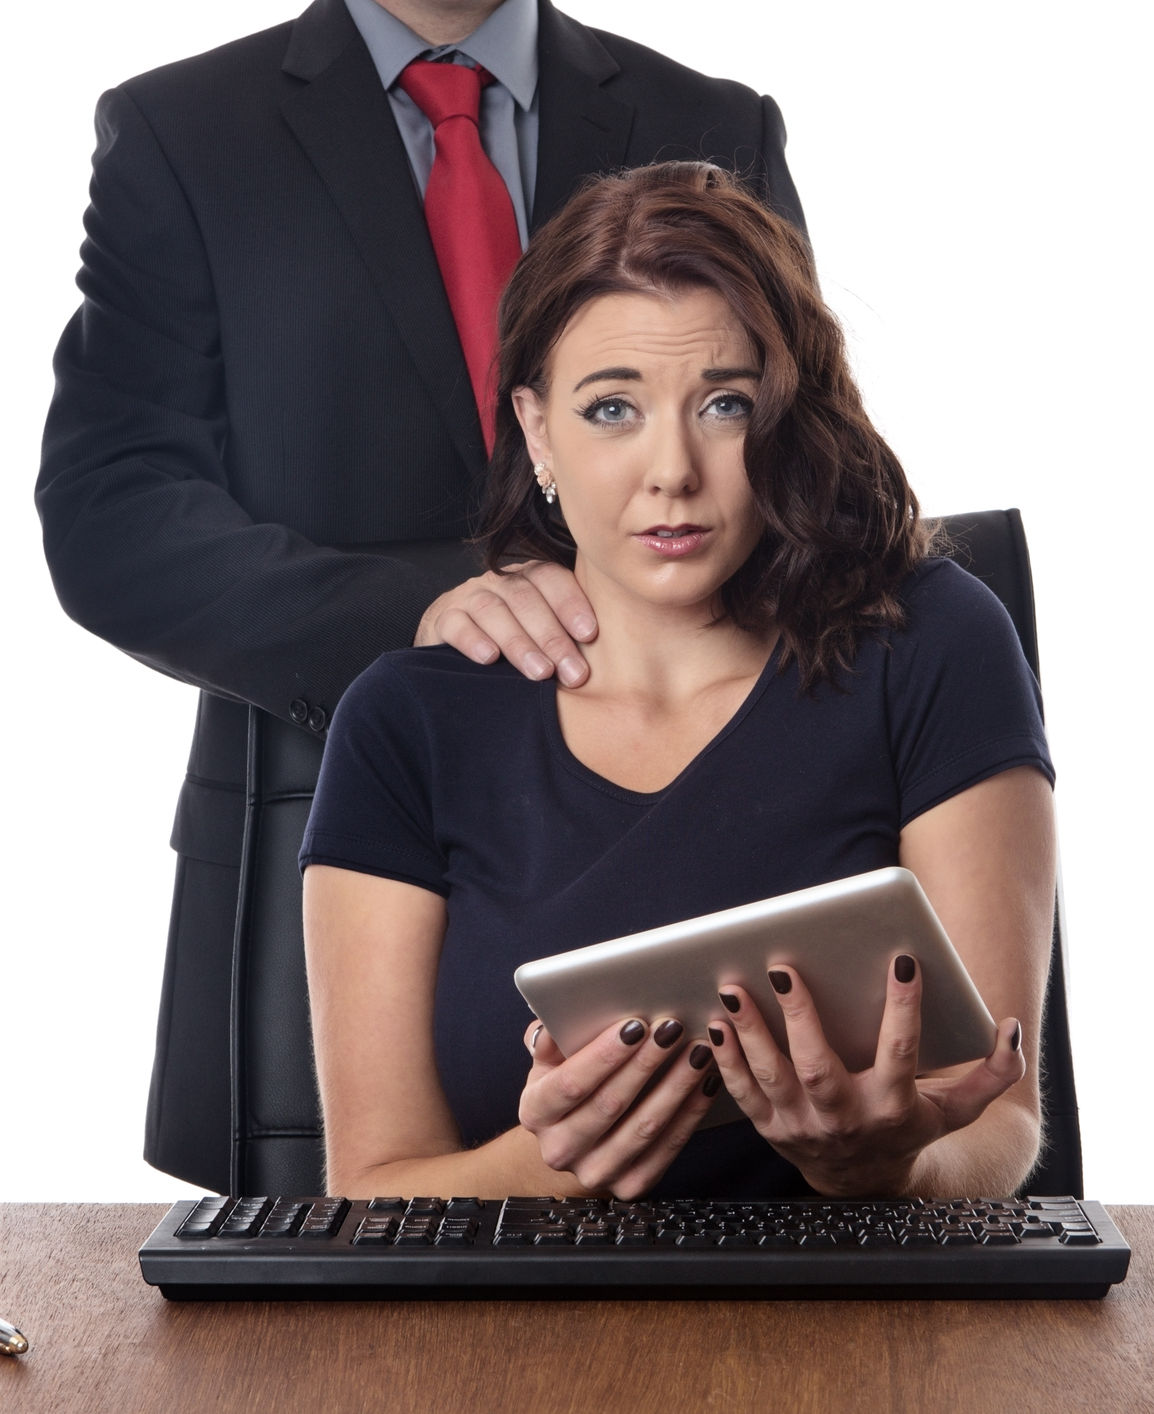 Sexual Harassment at Work-c-iStock-625313502